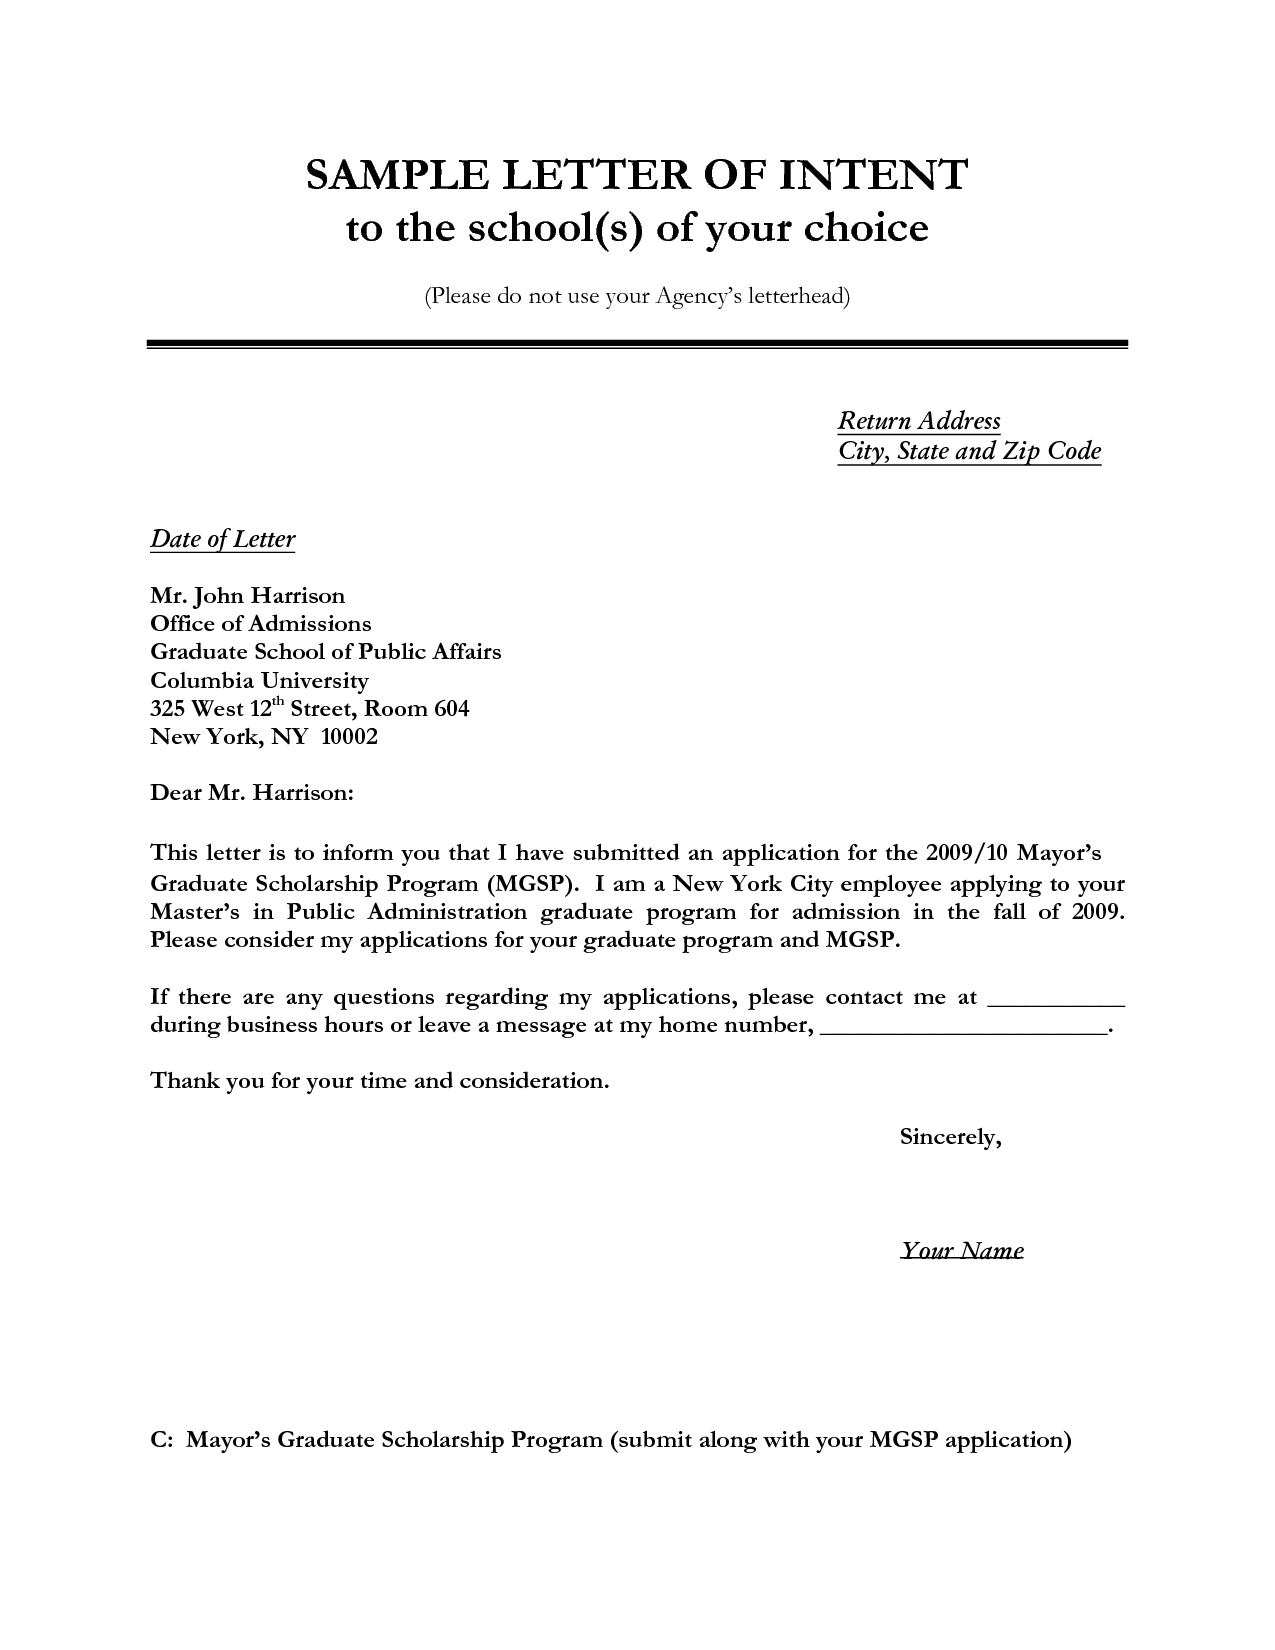 legal letter of intent template example-Letter of intent sample 13-c